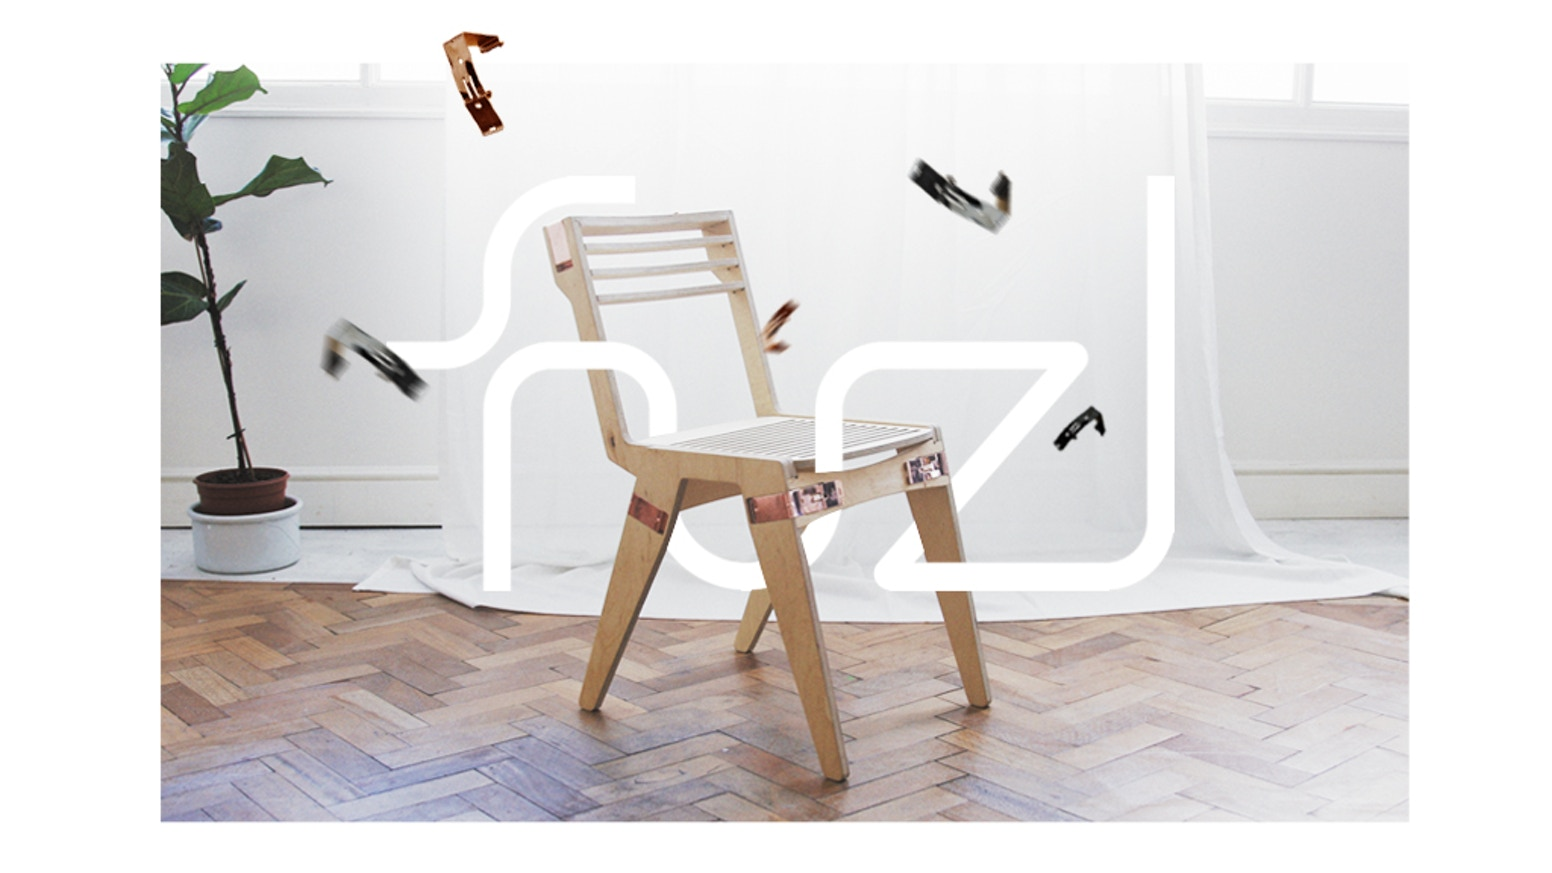 A Range Of Self Embly Furniture That Clips Together With No Tools